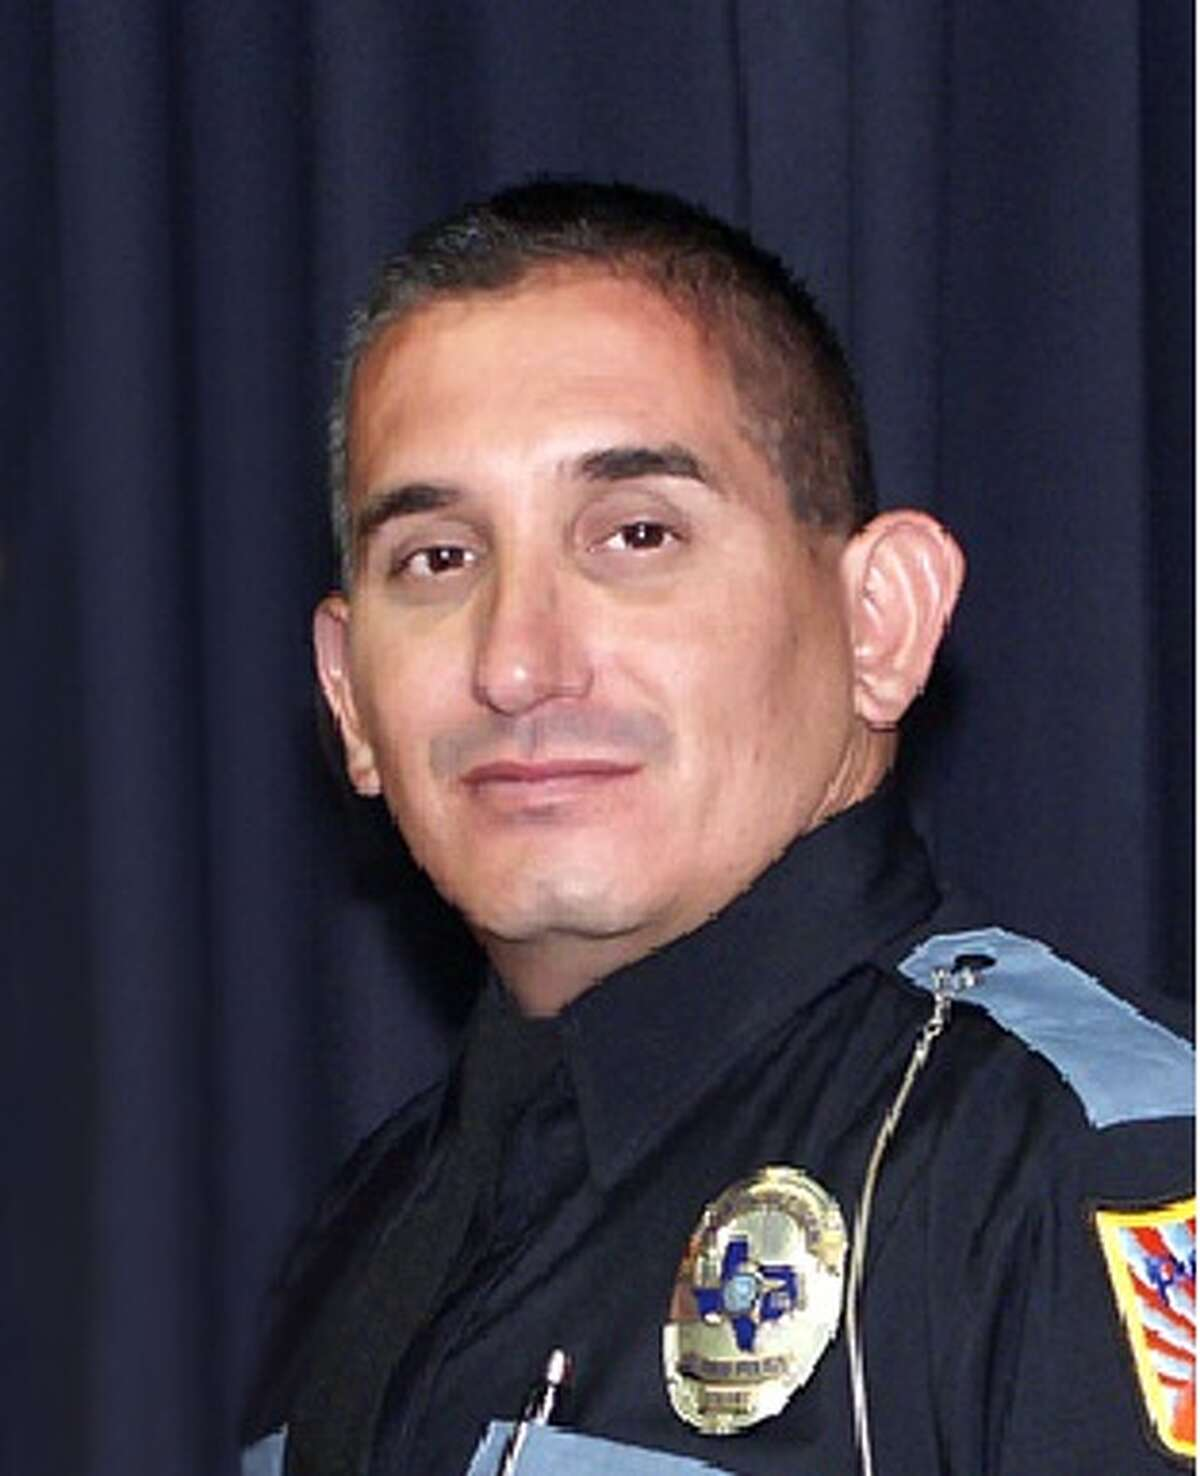 John Perry - a 45-year-old El Paso man previously accused of being a member of the Barrio Azteca gang - was behind the wheel of a Kia Optima when he hit a motorcycle driven by Officer David Ortiz (pictured) from behind on March 10, the El Paso Police Department announced Monday. Ortiz died of his injuries on March 14.